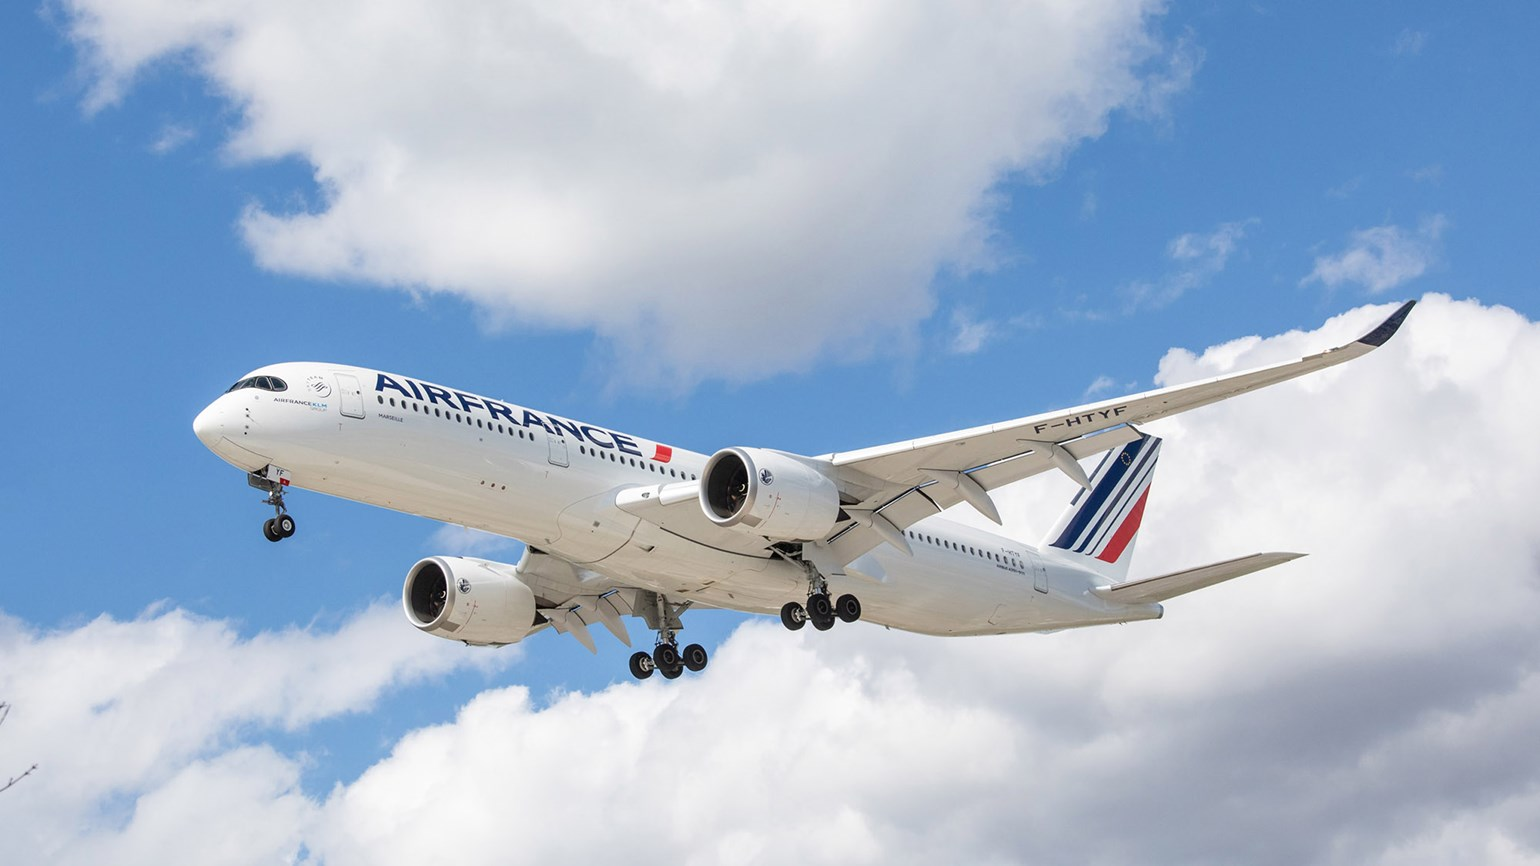 Air France A350 [credit: sockagphoto/Shutterstock.com]